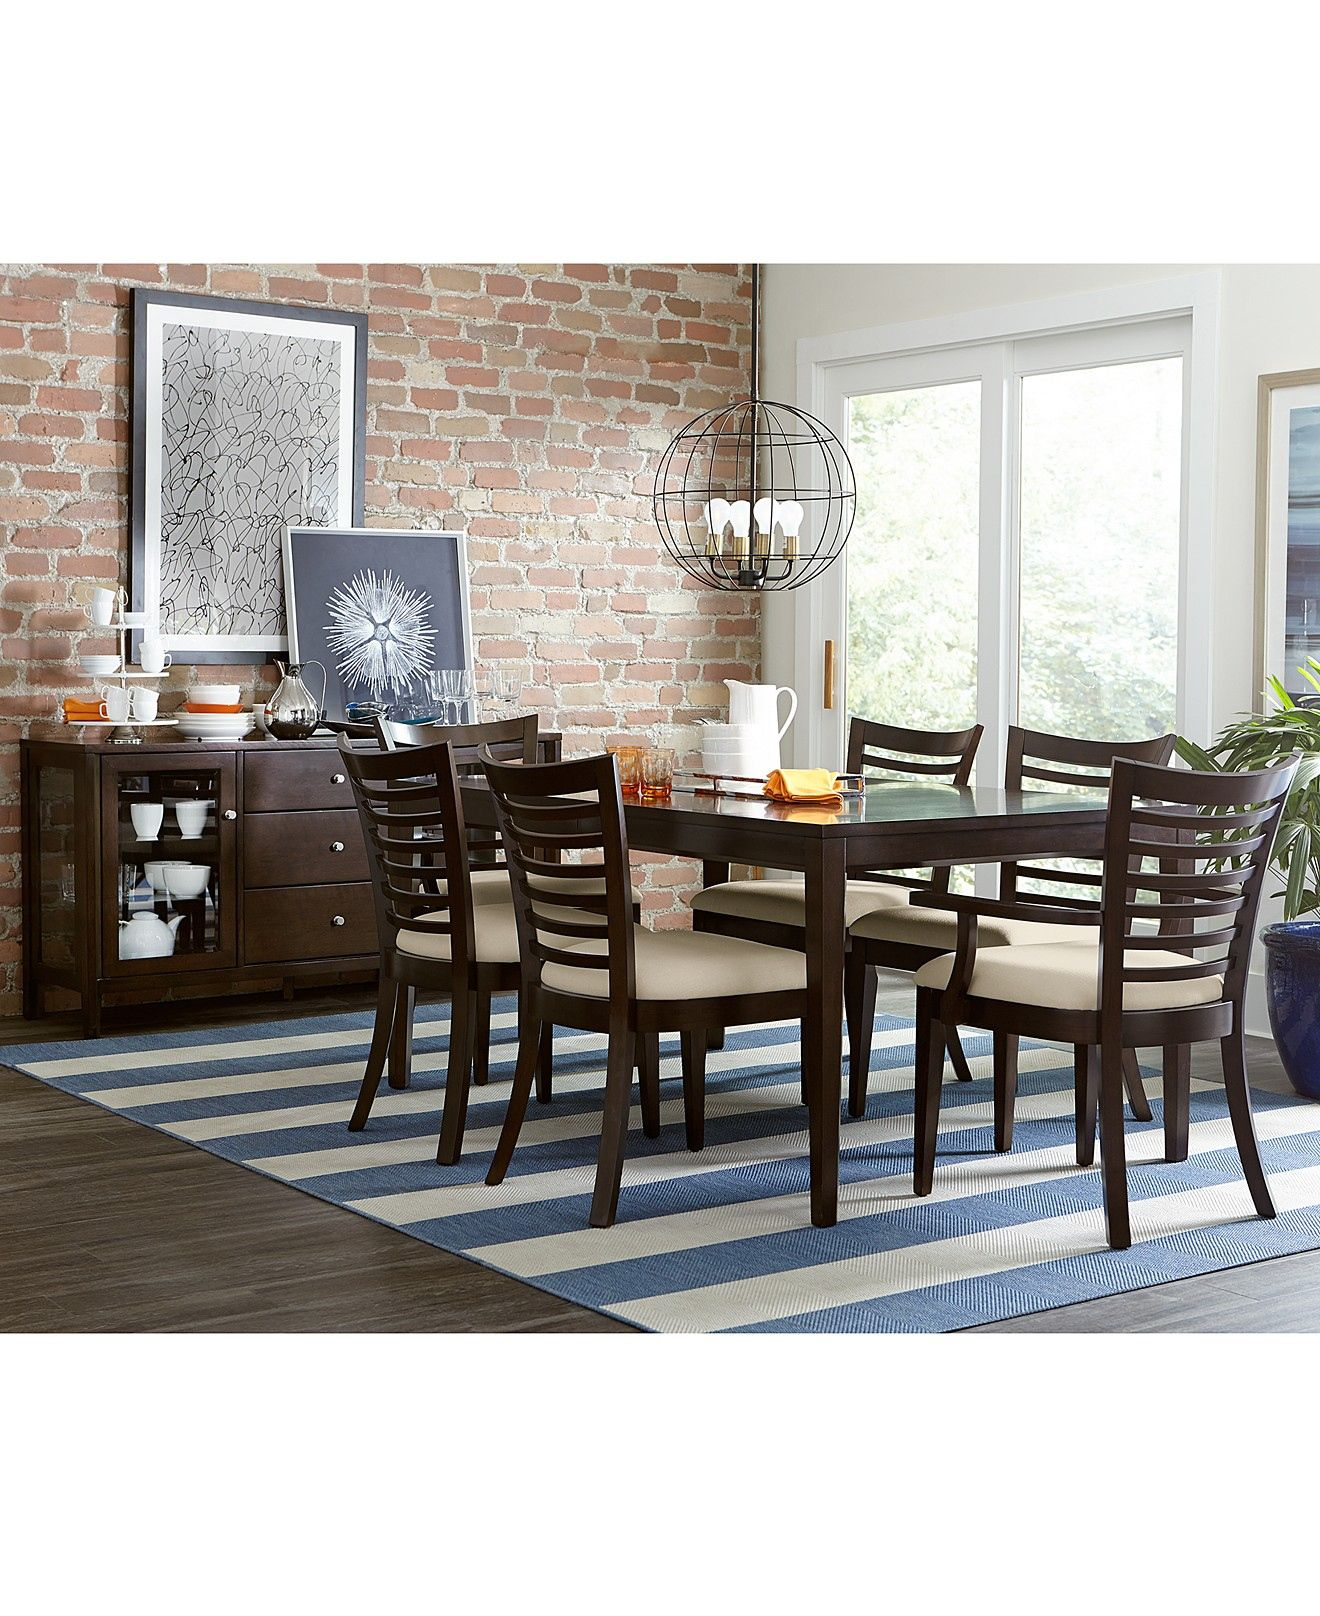 Macy's Dining Room Furniture  Rustic Modern Furniture Check More Simple Macys Dining Room Chairs Design Ideas